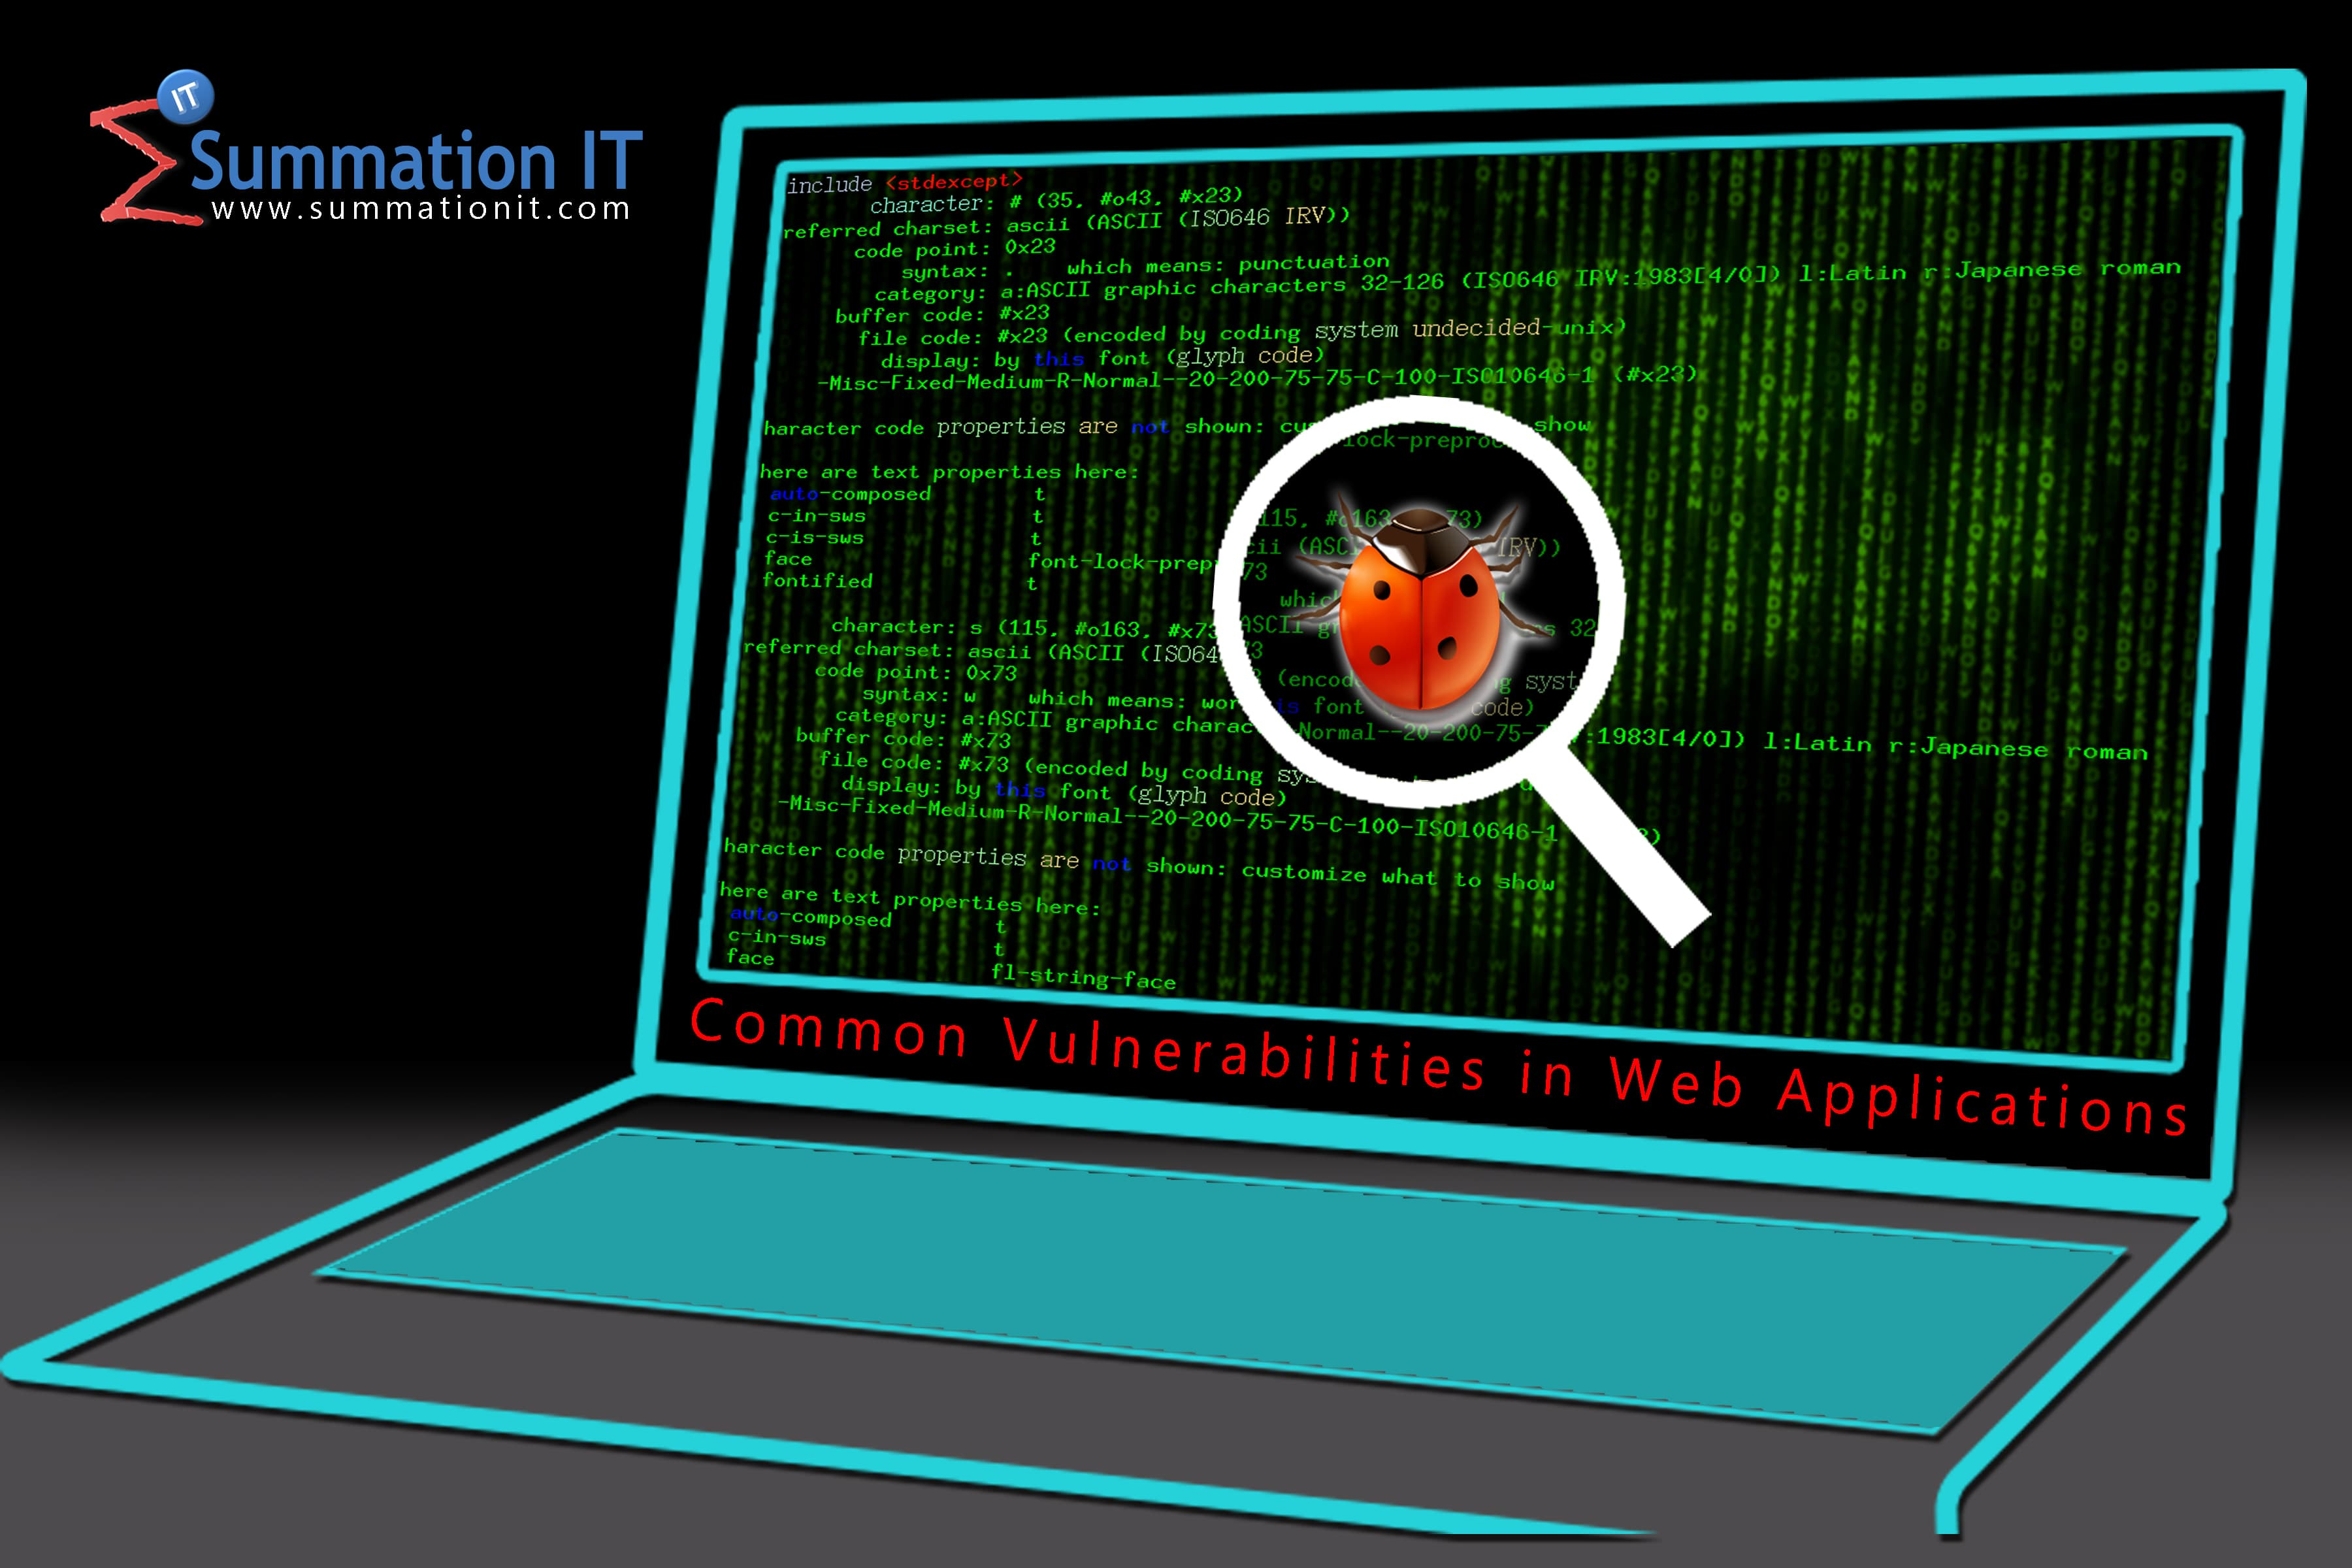 Common Vulnerabilities in Web Applications: